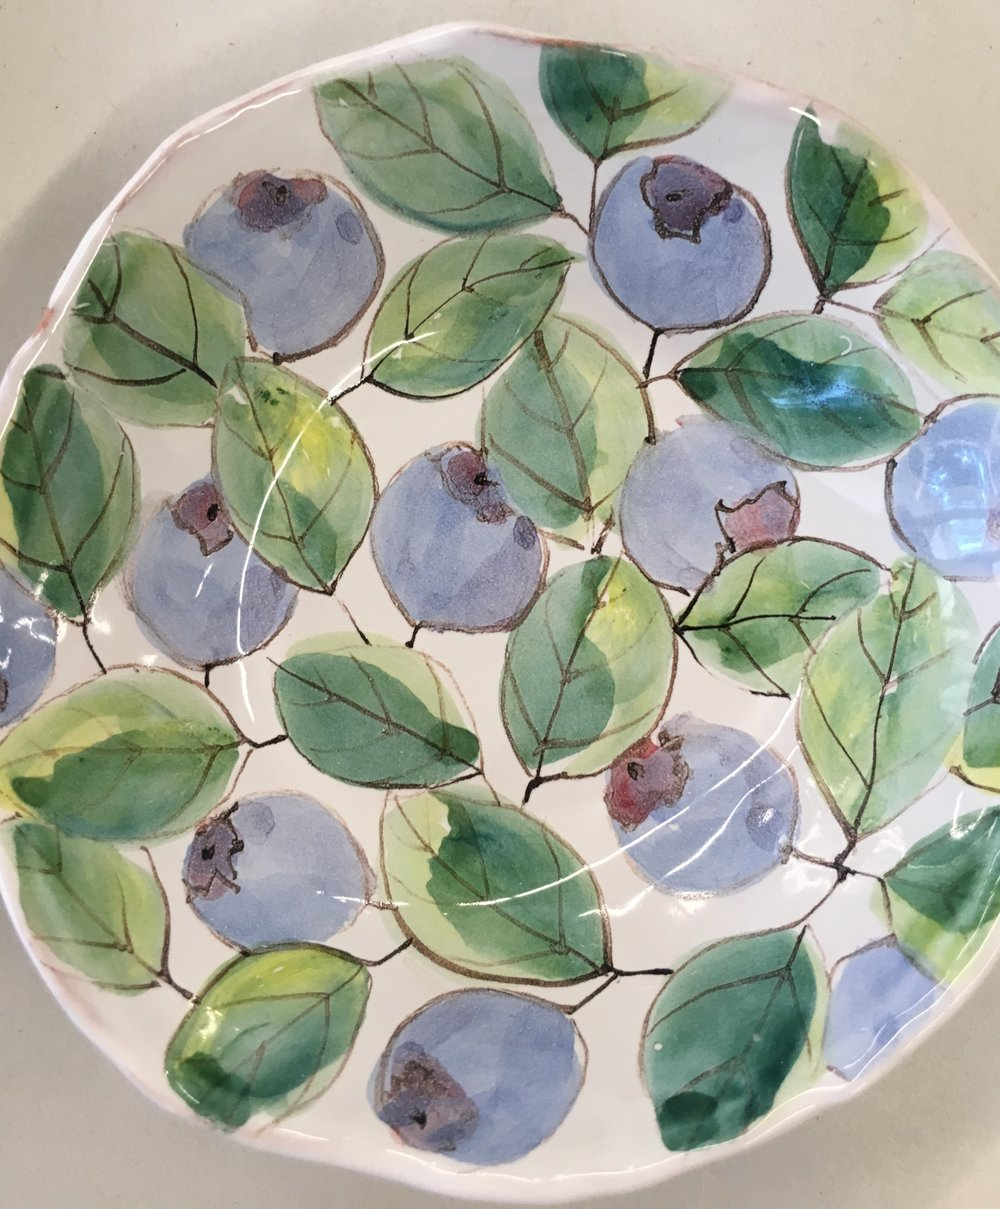 Laurie Curtis' watercolor majolica technique